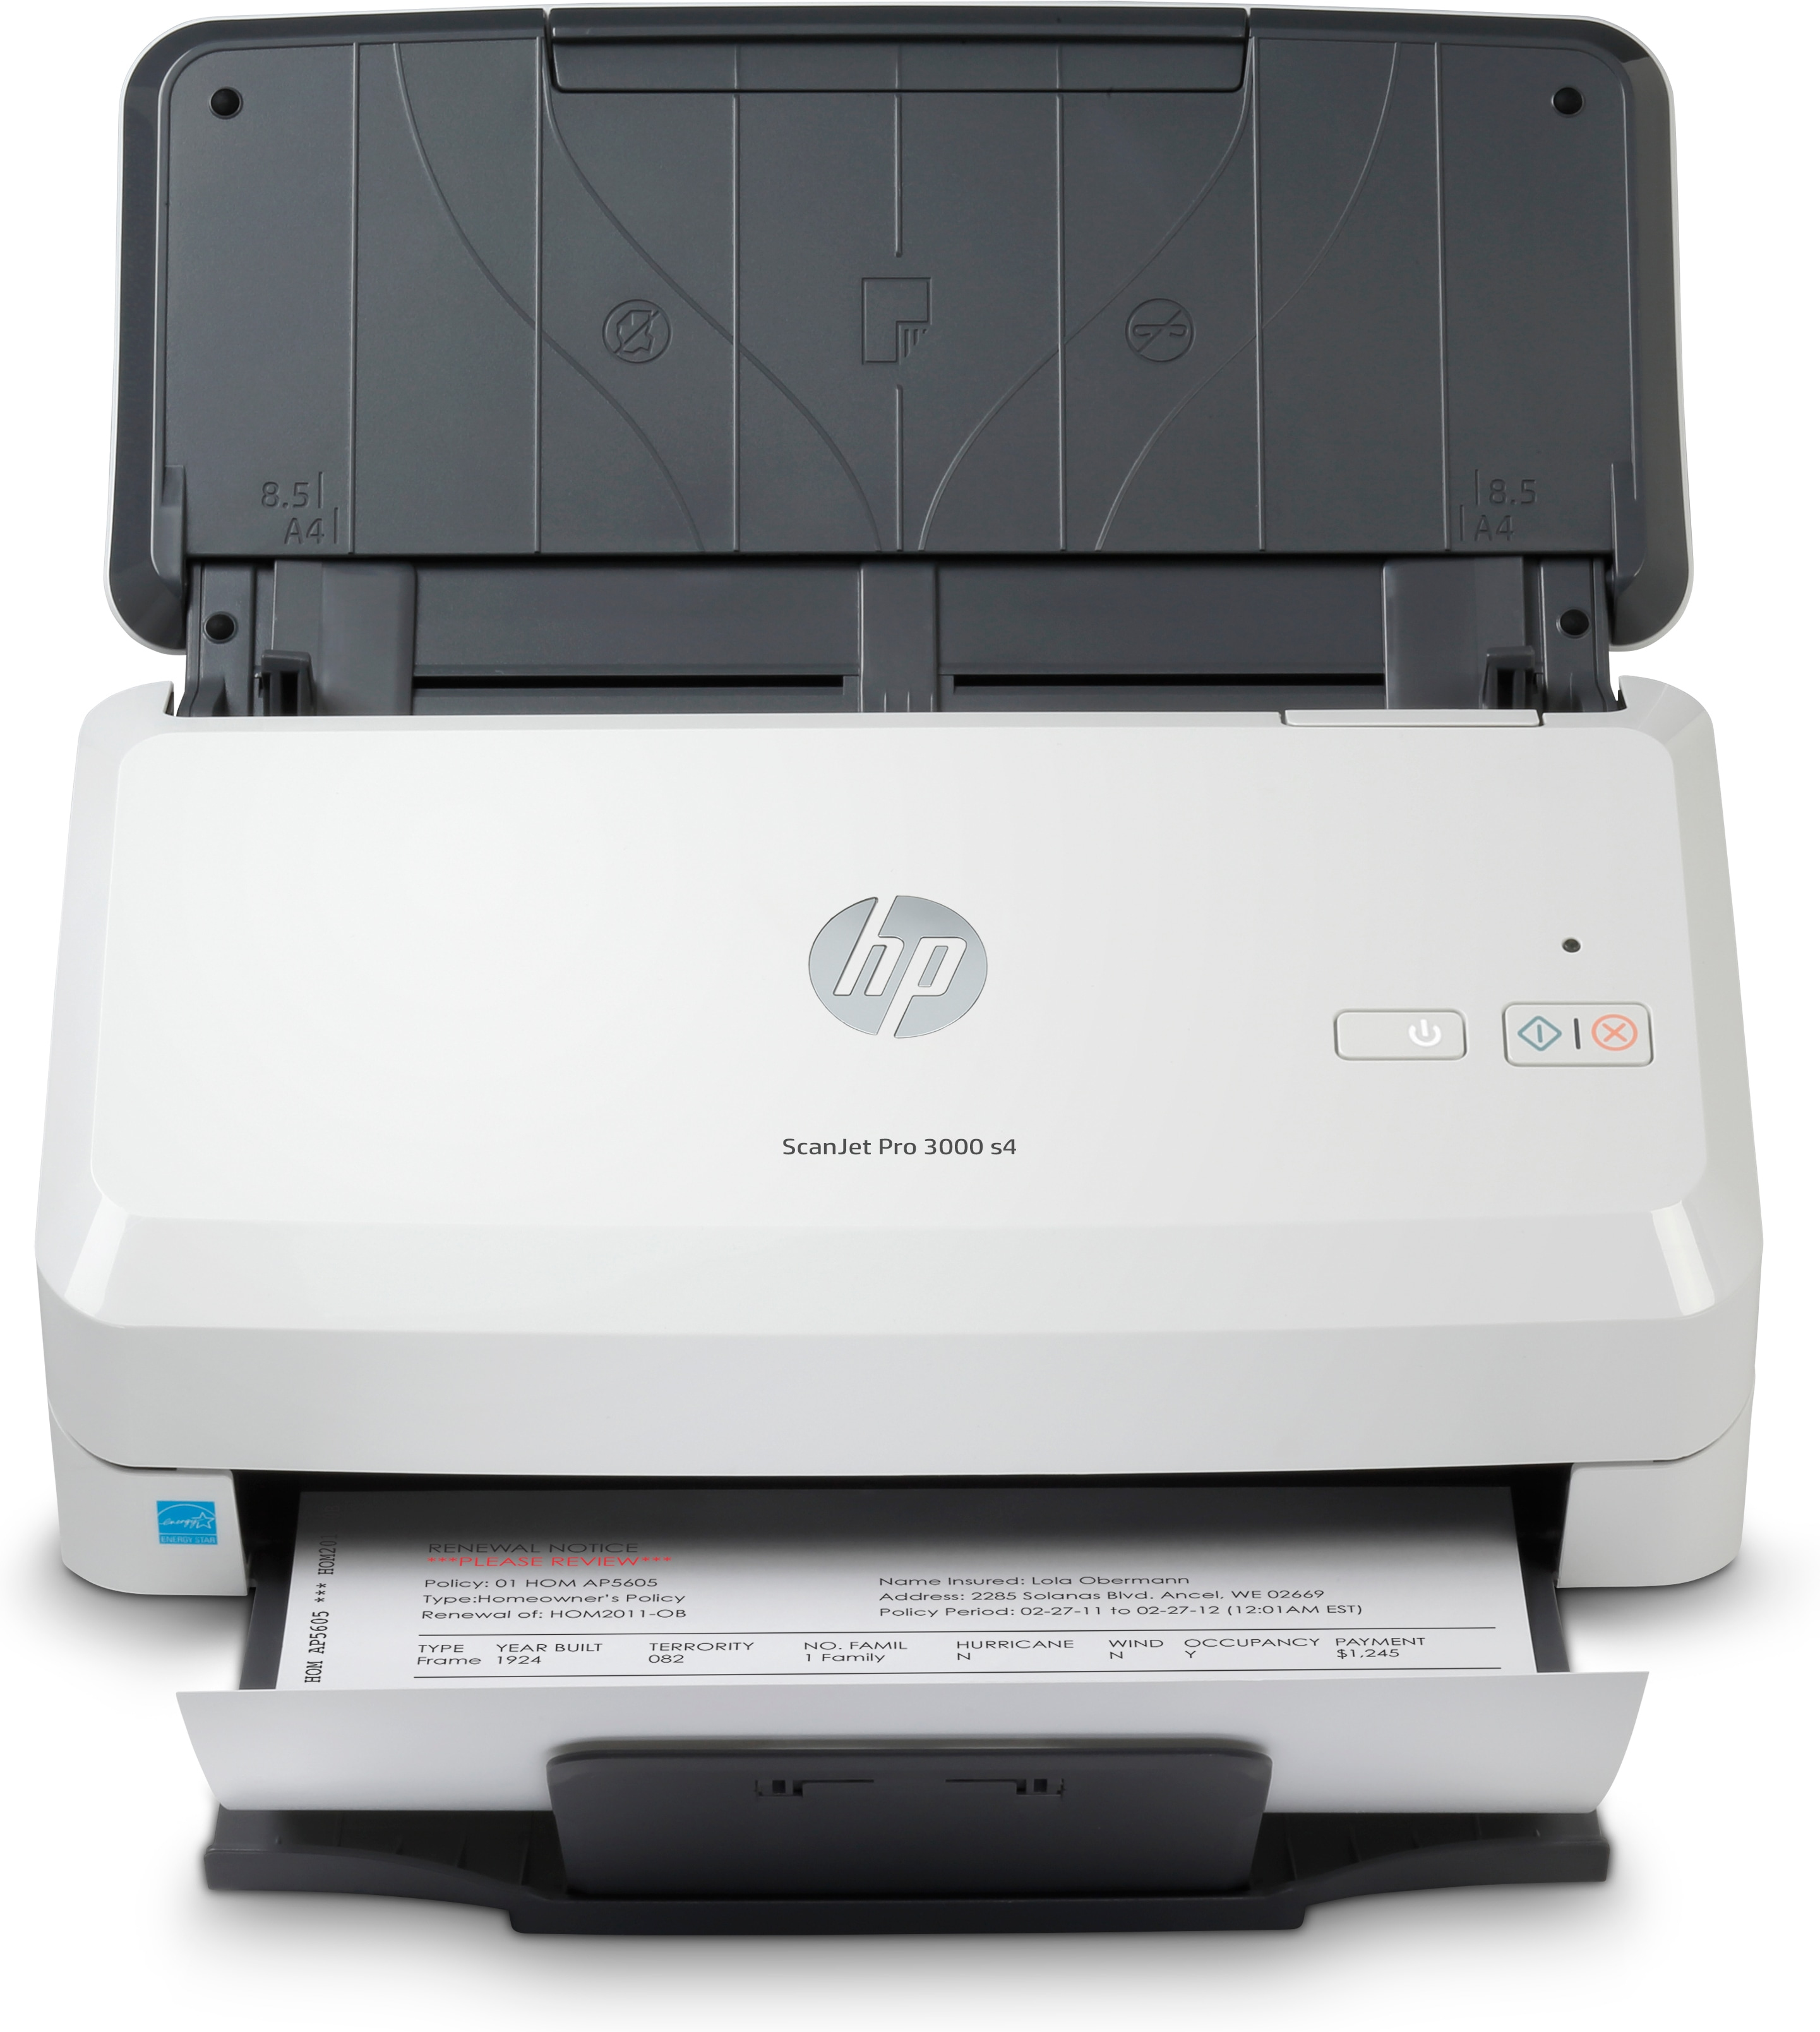 Hp - Ops Scanners (4x)           Scanjet Pro 3000 S4 Usb 3.0         A4 Sheet-feed 600dpi 24bit       In 6fw07a#b19